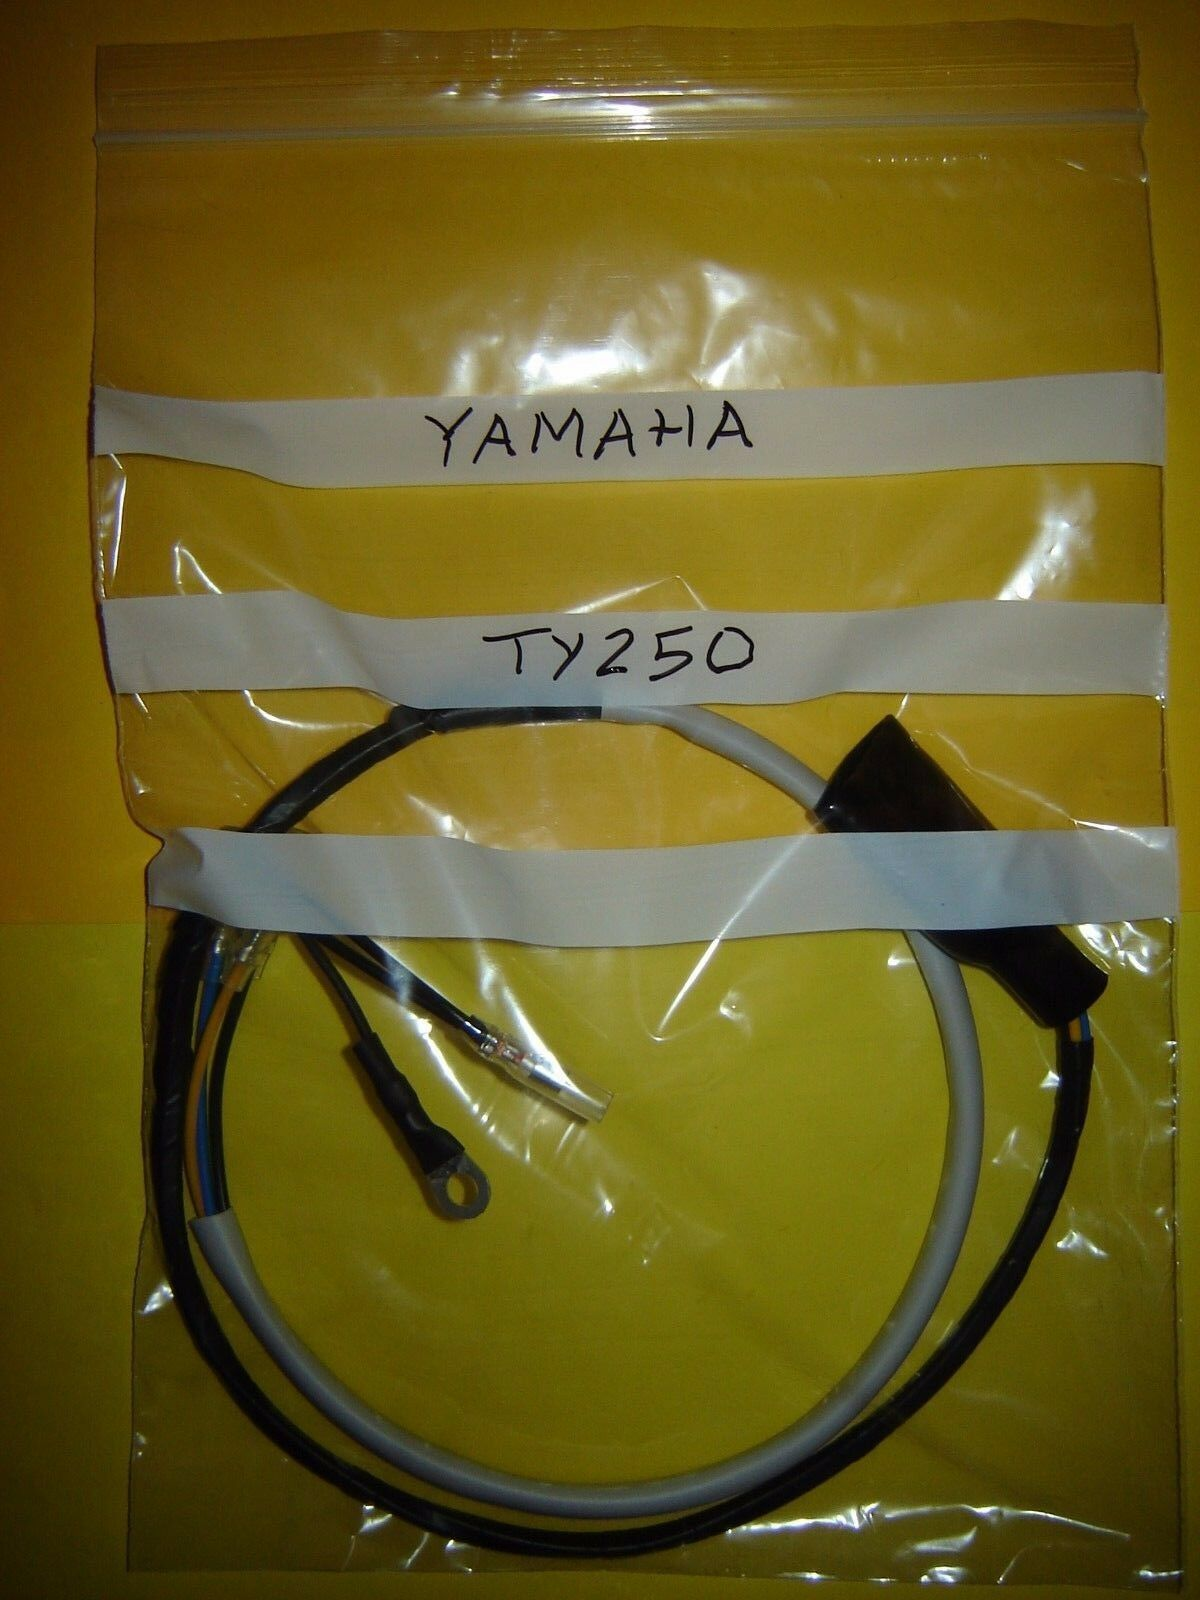 250cc Wiring Harness Yamaha Ty250 Trials Bike Loom New 1974 To 1977 Models 1 Of 5free Shipping